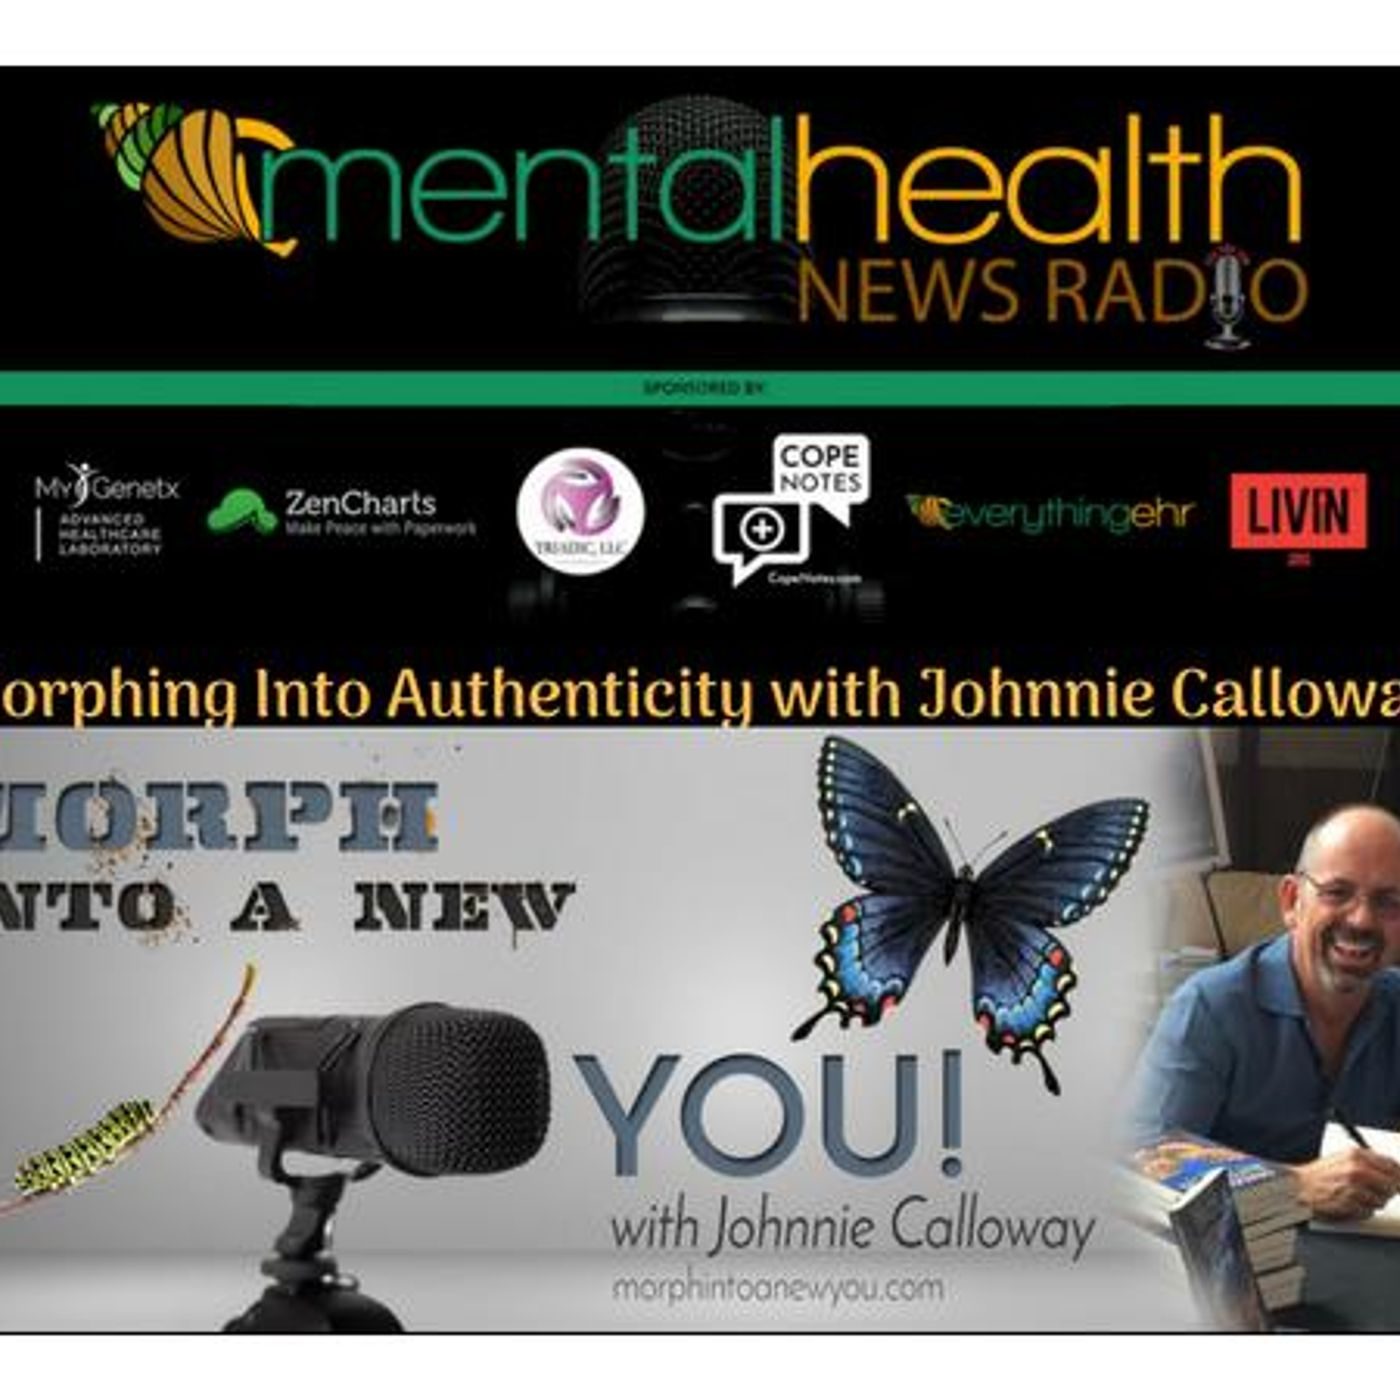 Mental Health News Radio - Morphing Into Authenticity with Johnnie Calloway